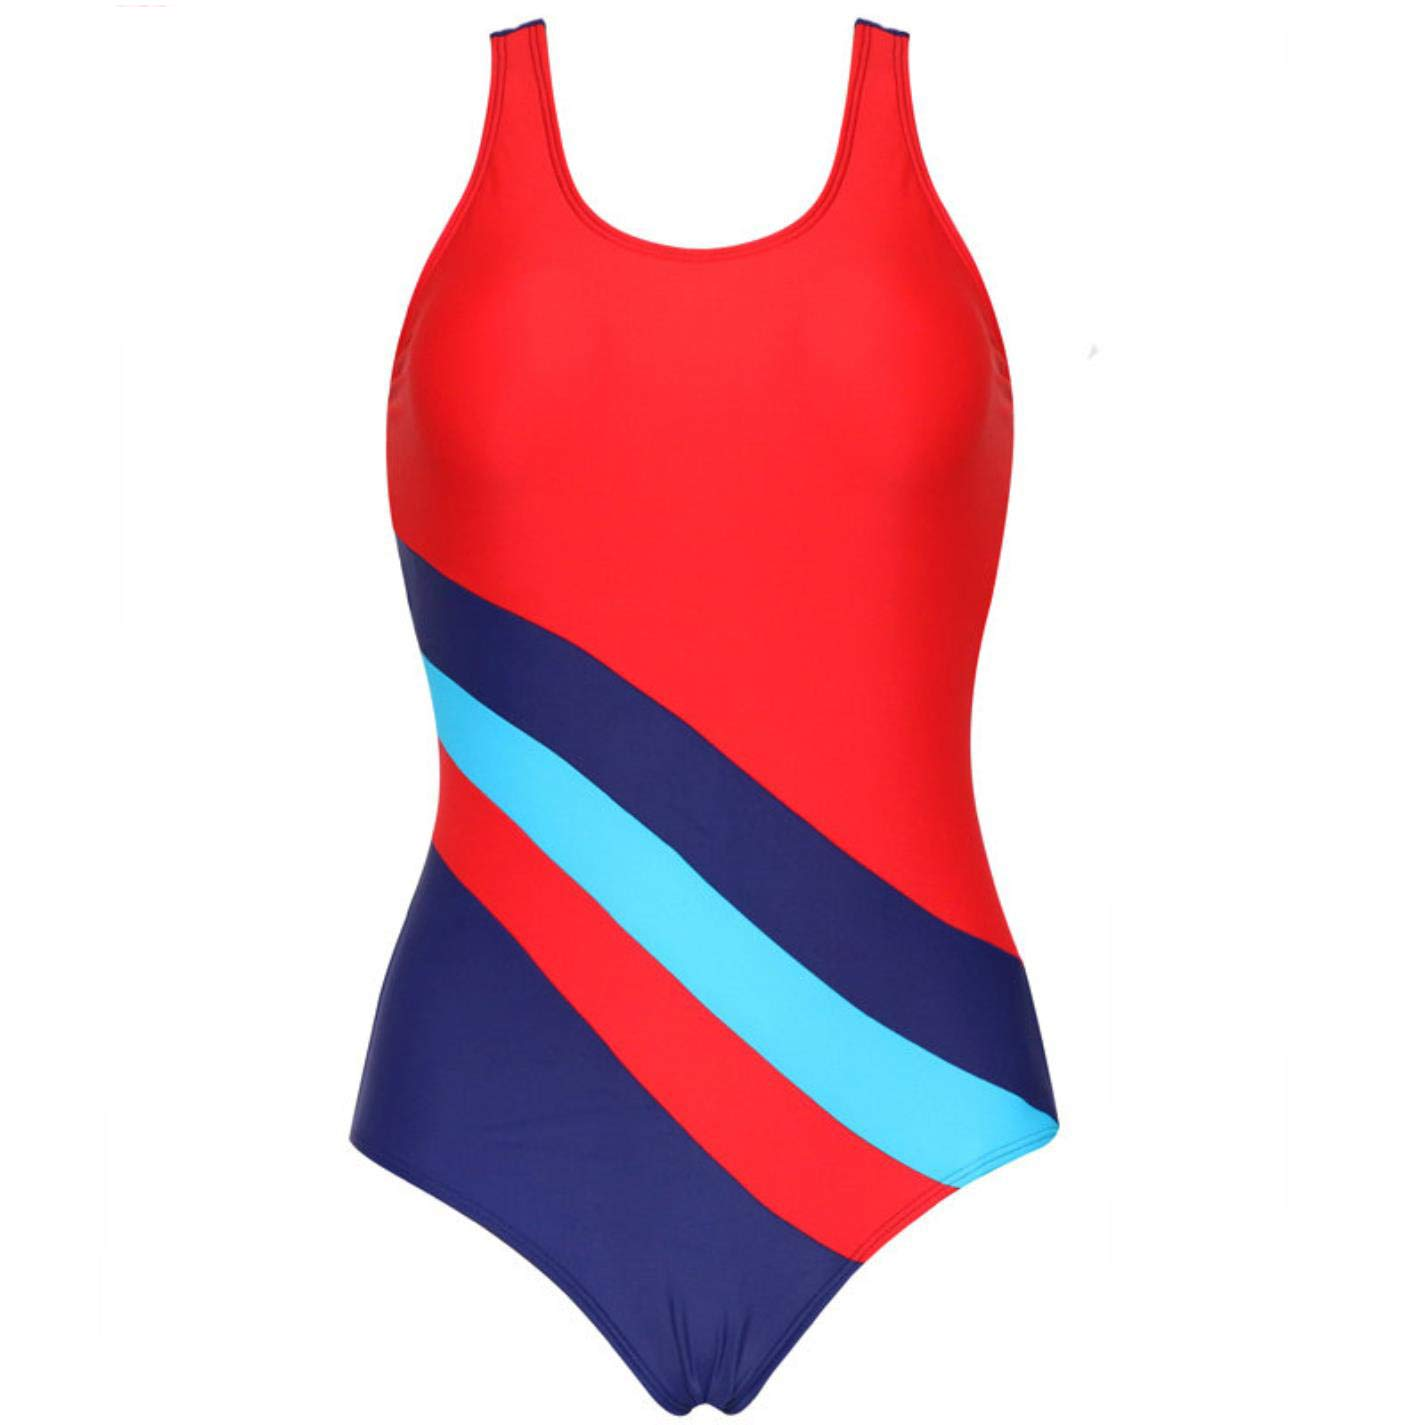 QVKis Women Patchwork One Piece Swimsuits Padded Beachwear Bathing Suits